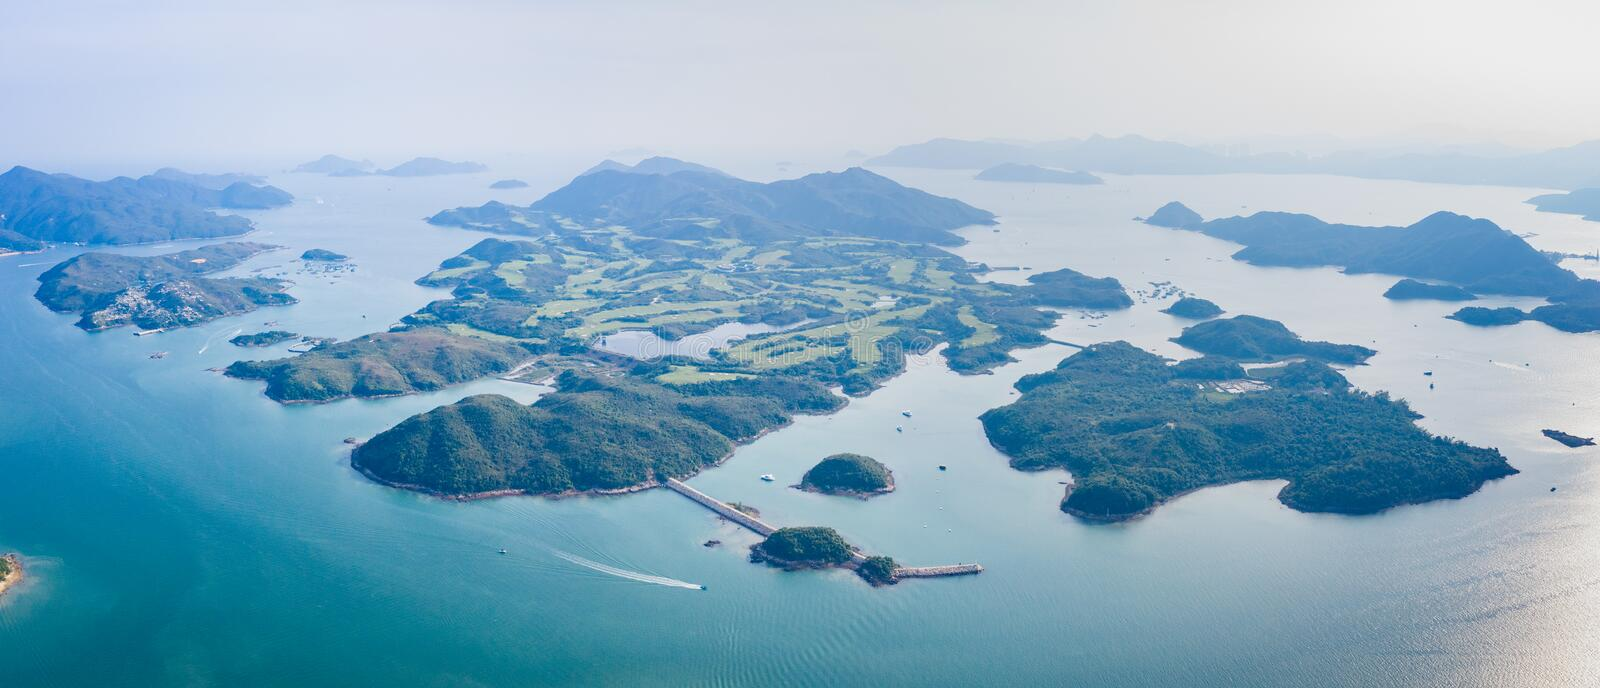 This is about Island in Sai Kung. Hong Kong royalty free stock photos